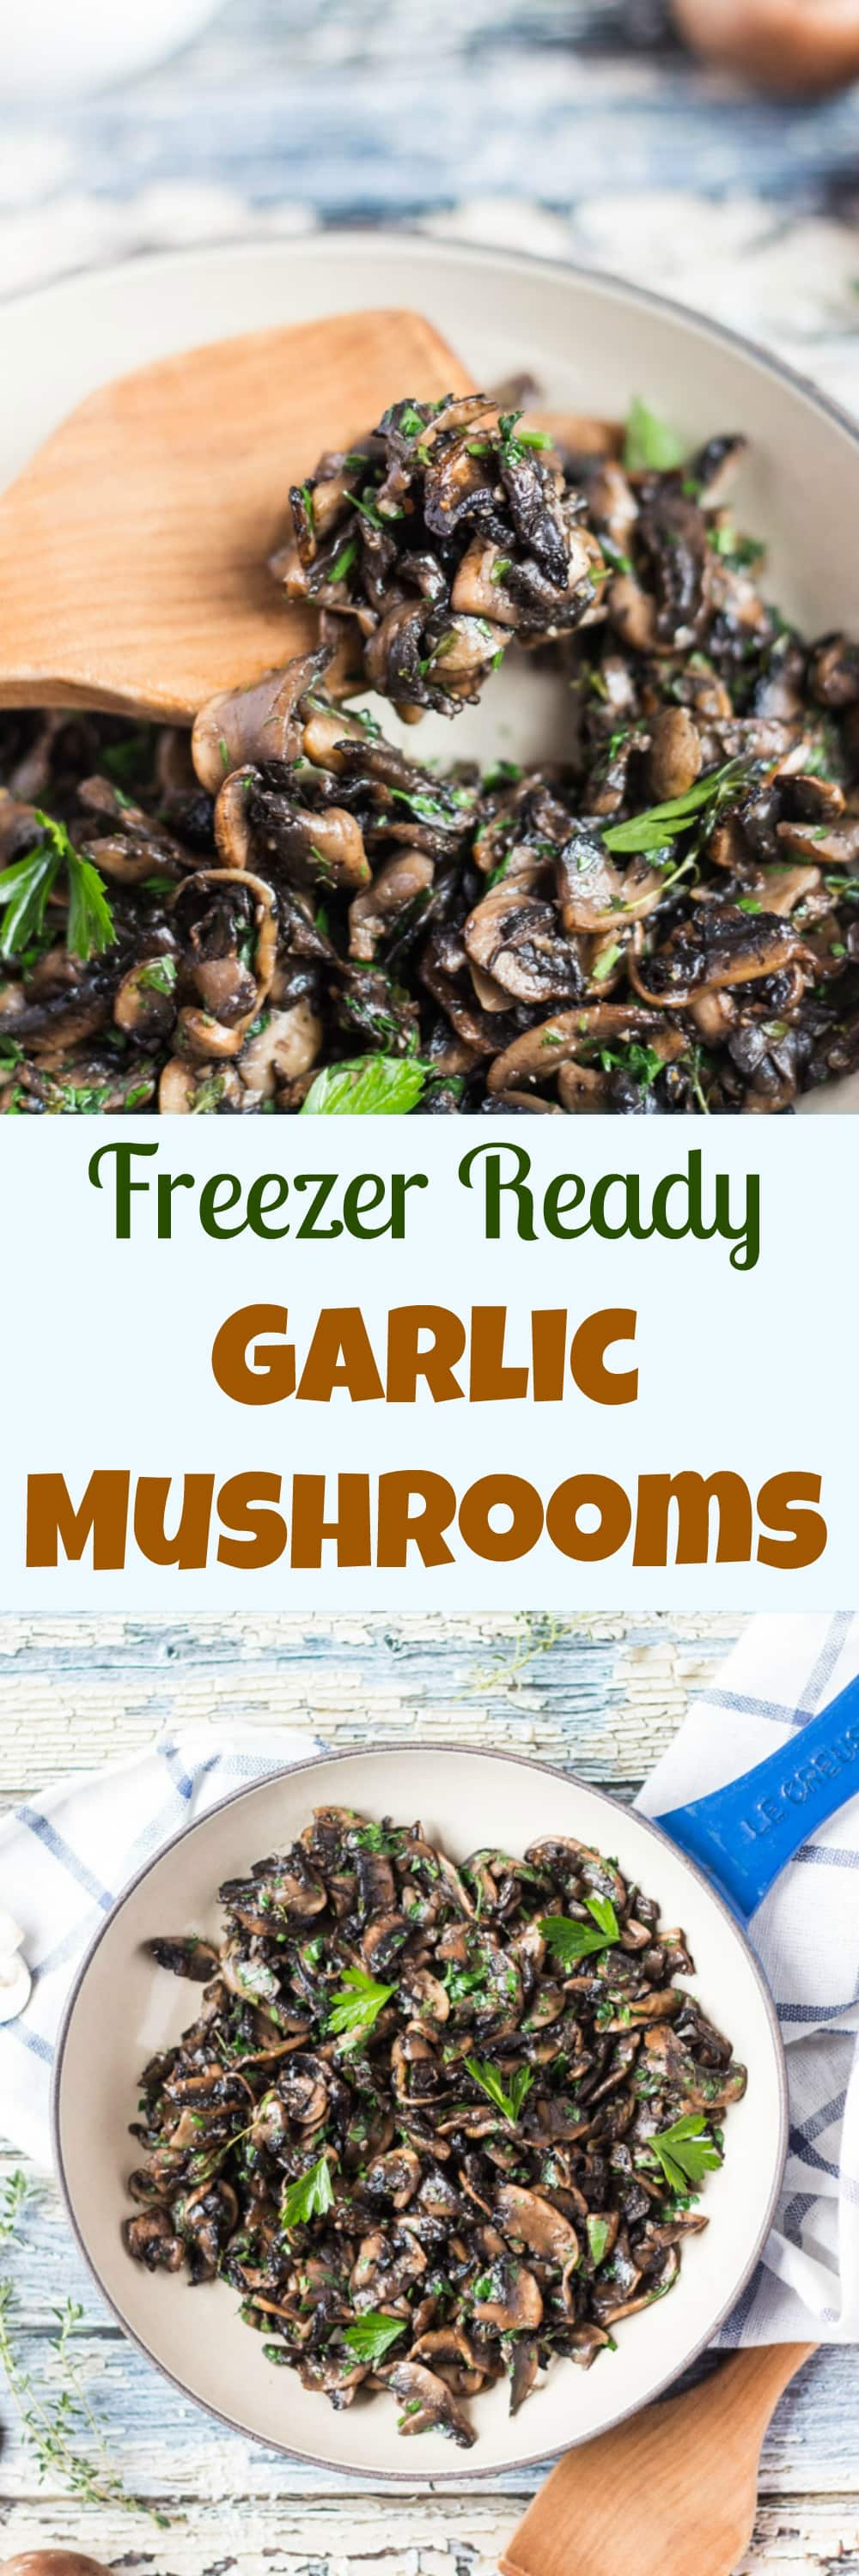 Freezer Ready Garlic Mushrooms. With a batch of these garlic mushrooms in the freezer, a simple meal is never far away.